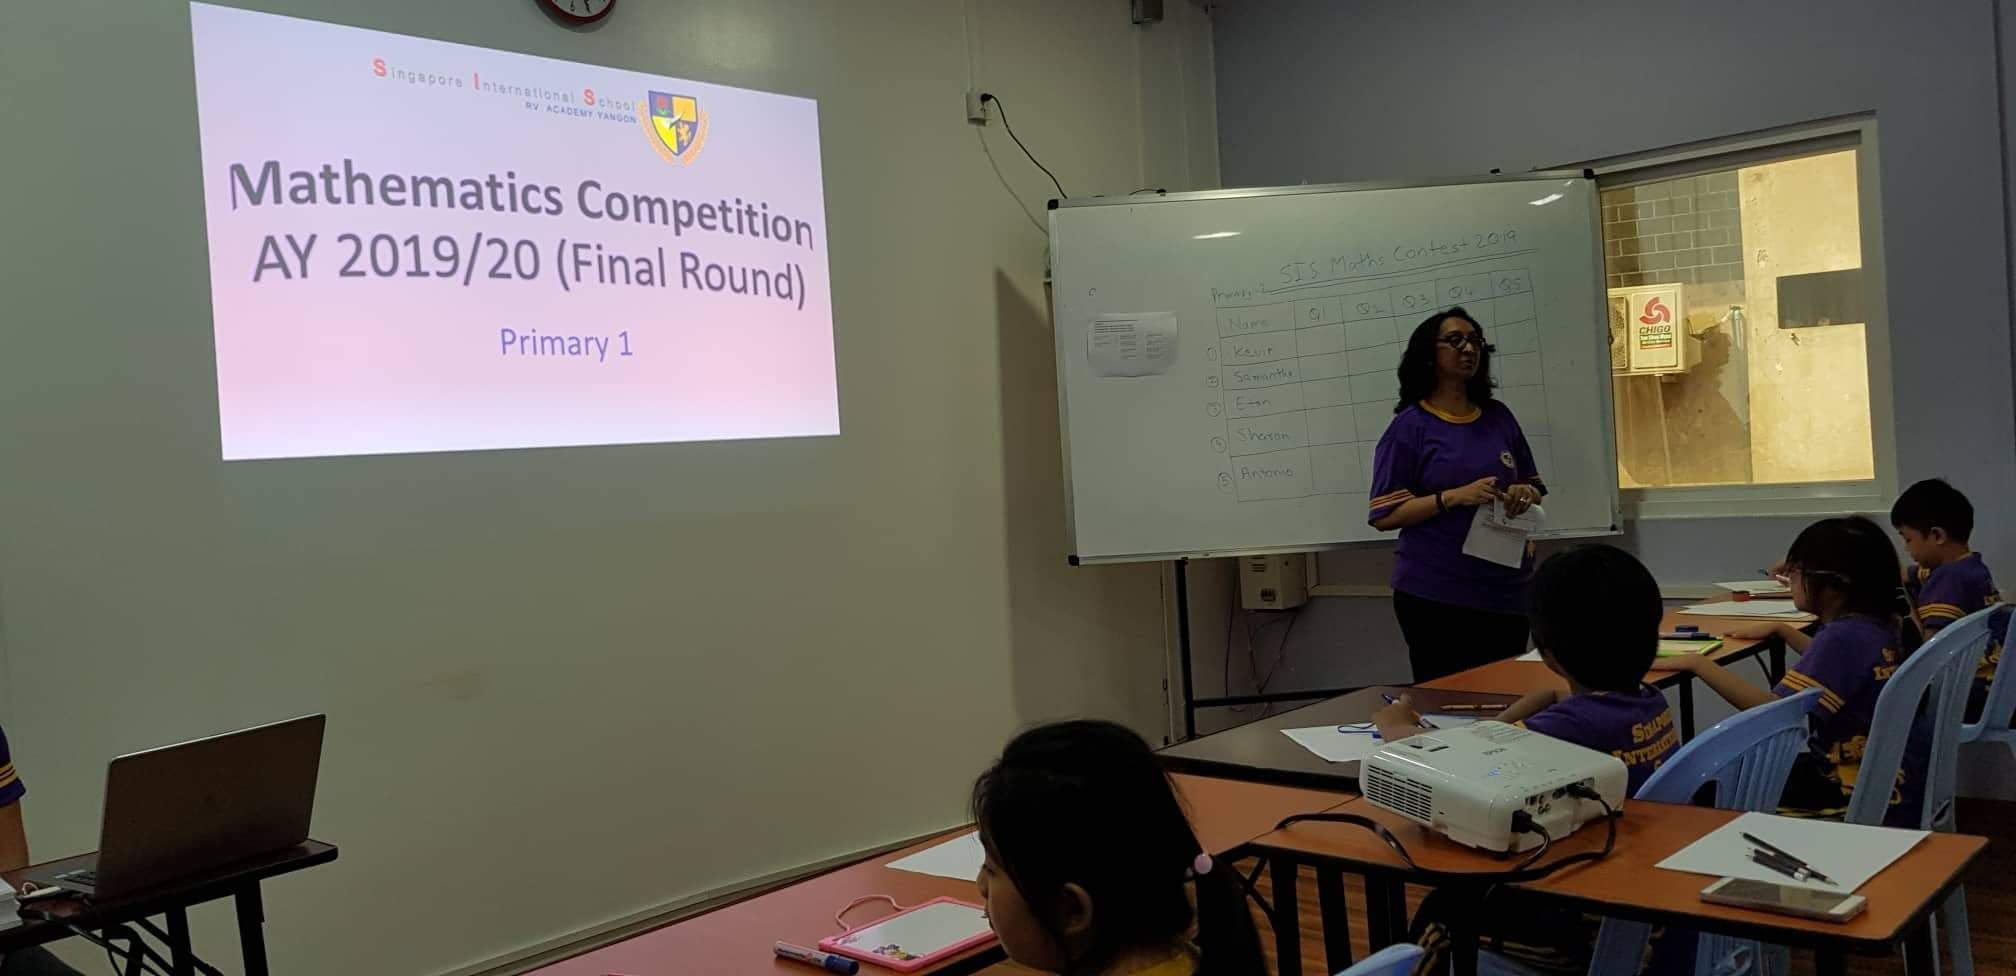 SIS Mathematics Competition 2019